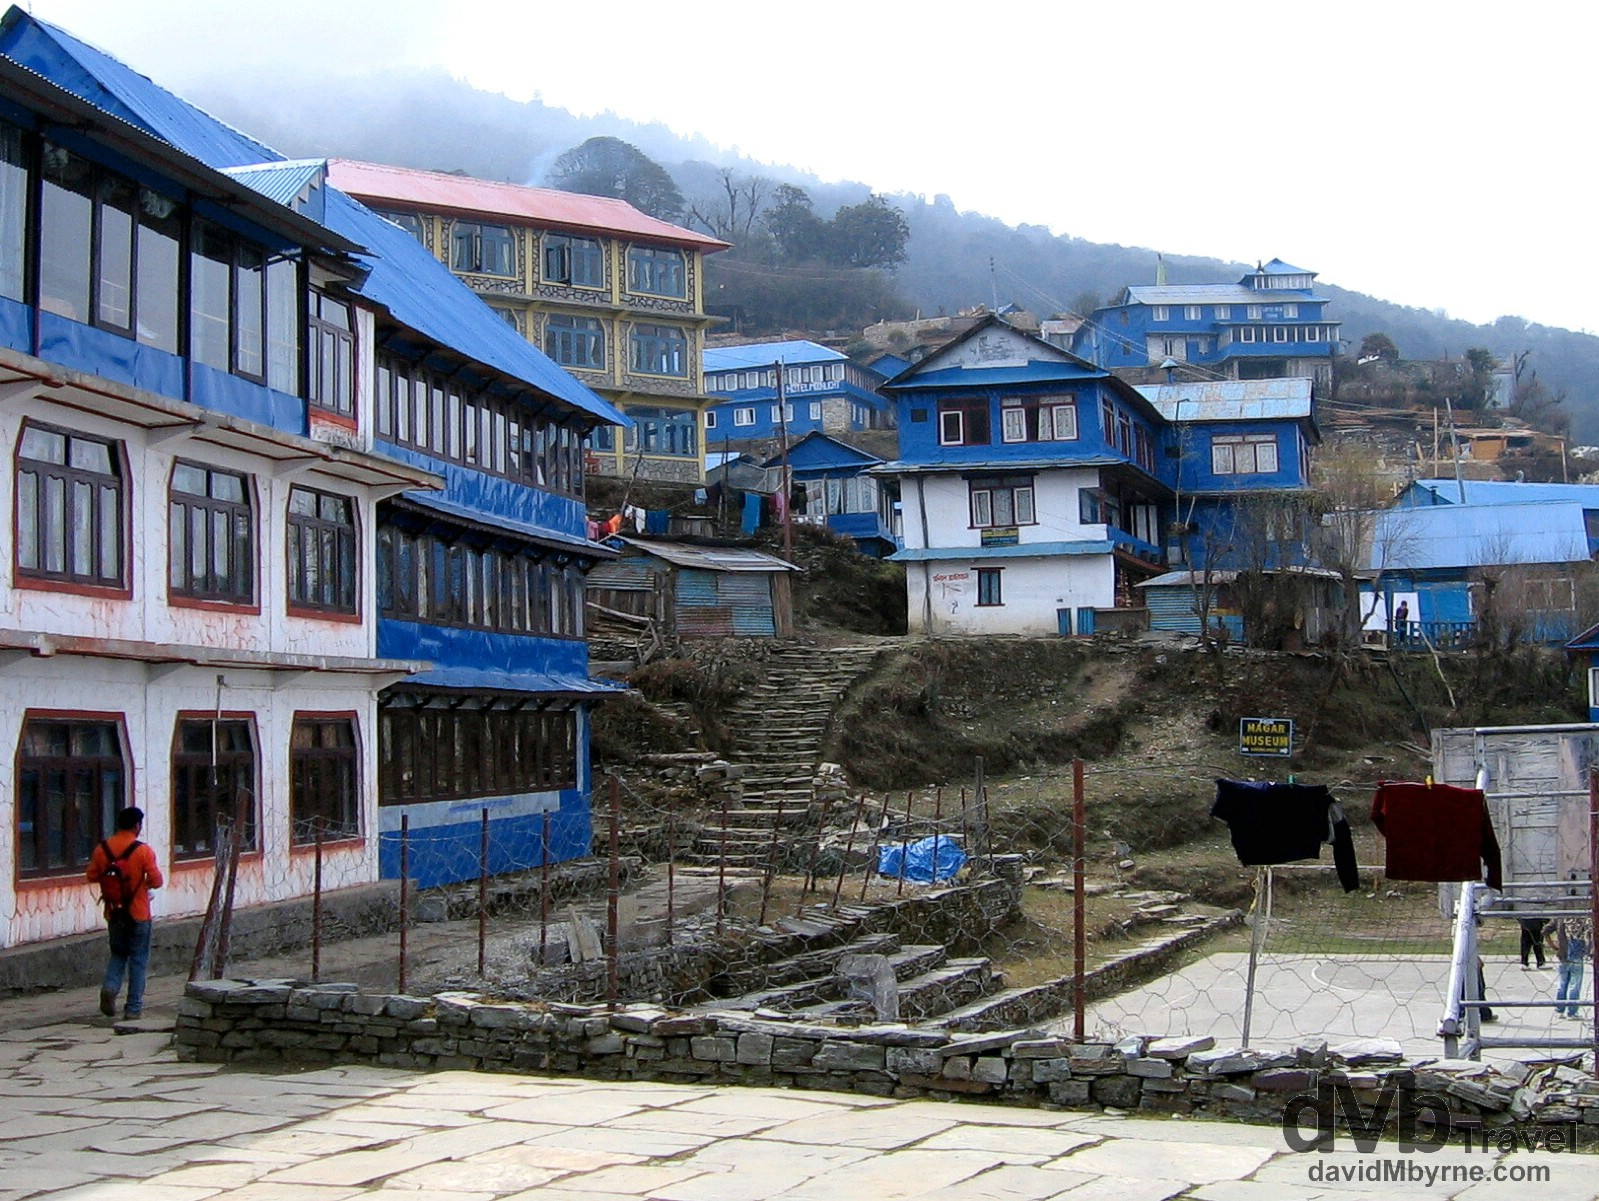 The distinctive blue buildings of Ghorepani village in the Annapurna Conservation Area, western Nepal, the overnight location for day 2 of the region's 3-day Poon Hill trek. March 12th, 2008.